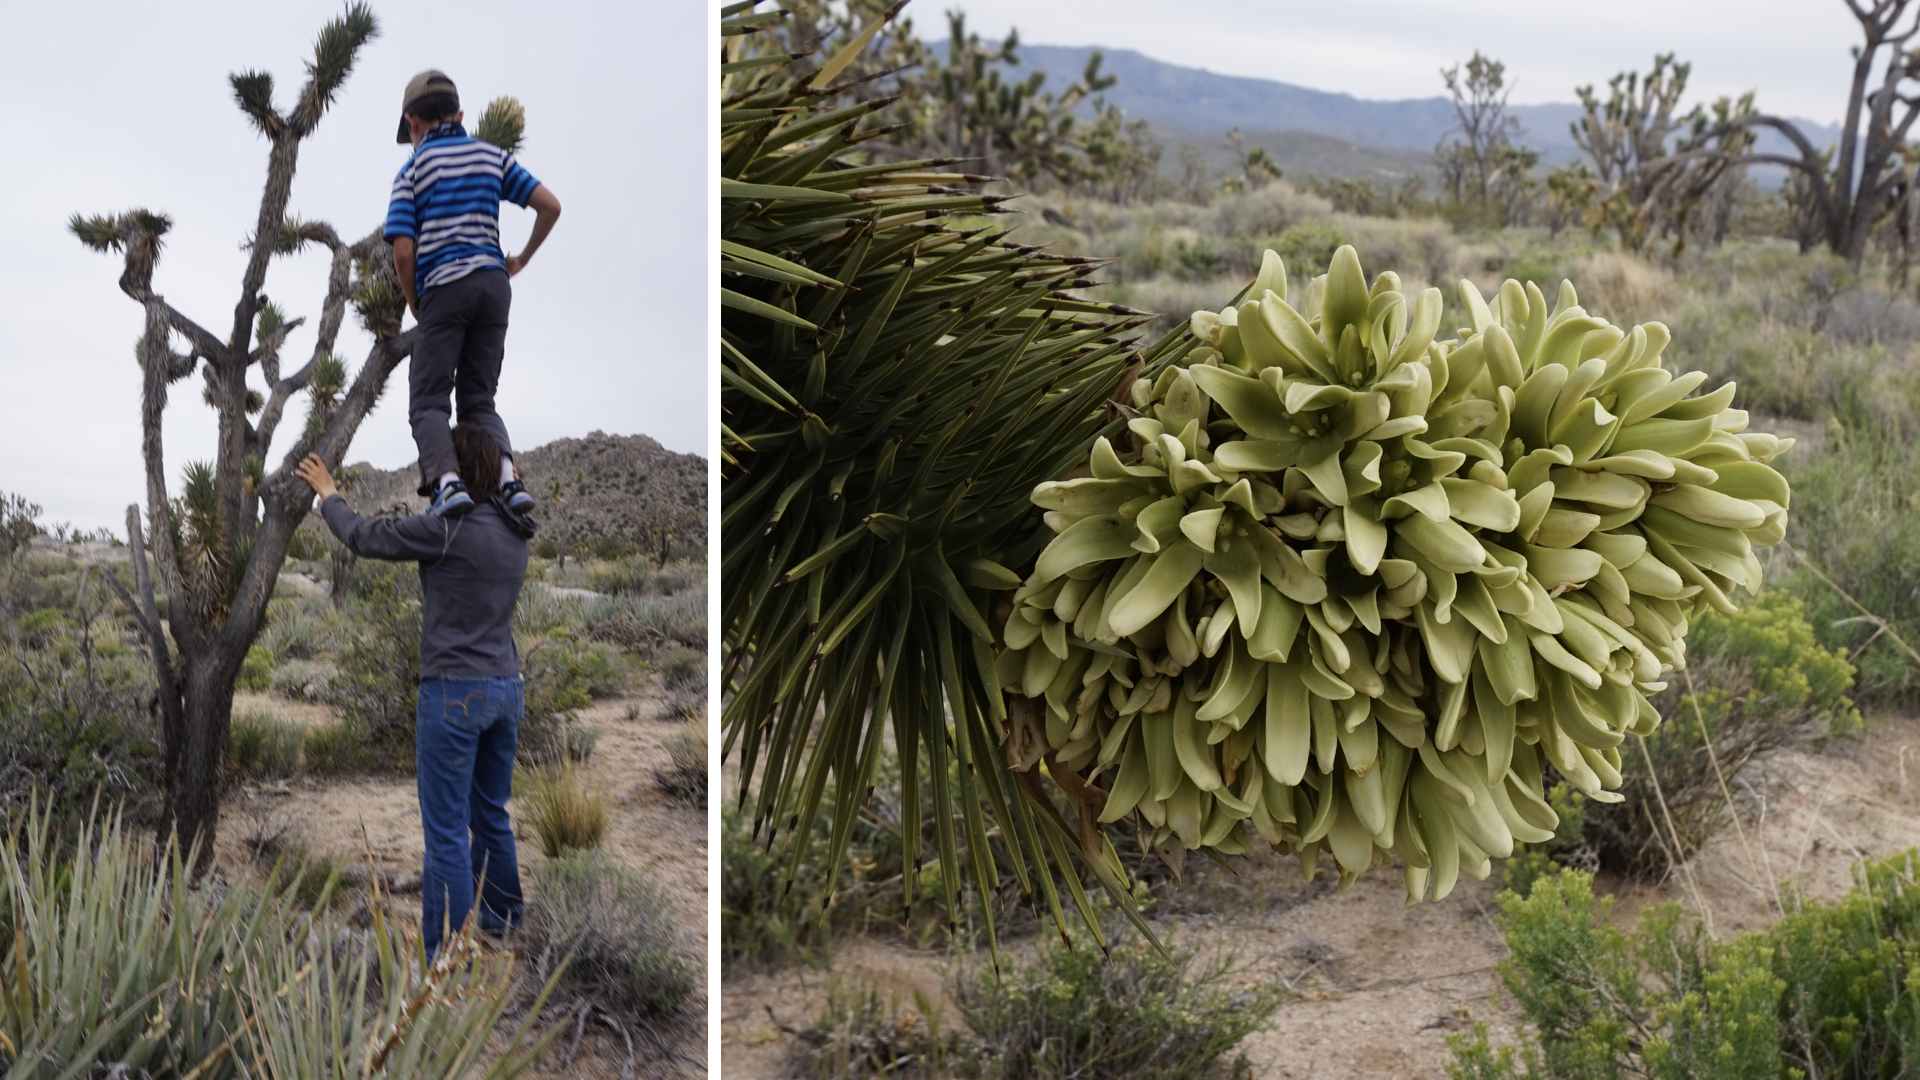 Picking a Joshua Tree flower and a close-up view of the bloom.